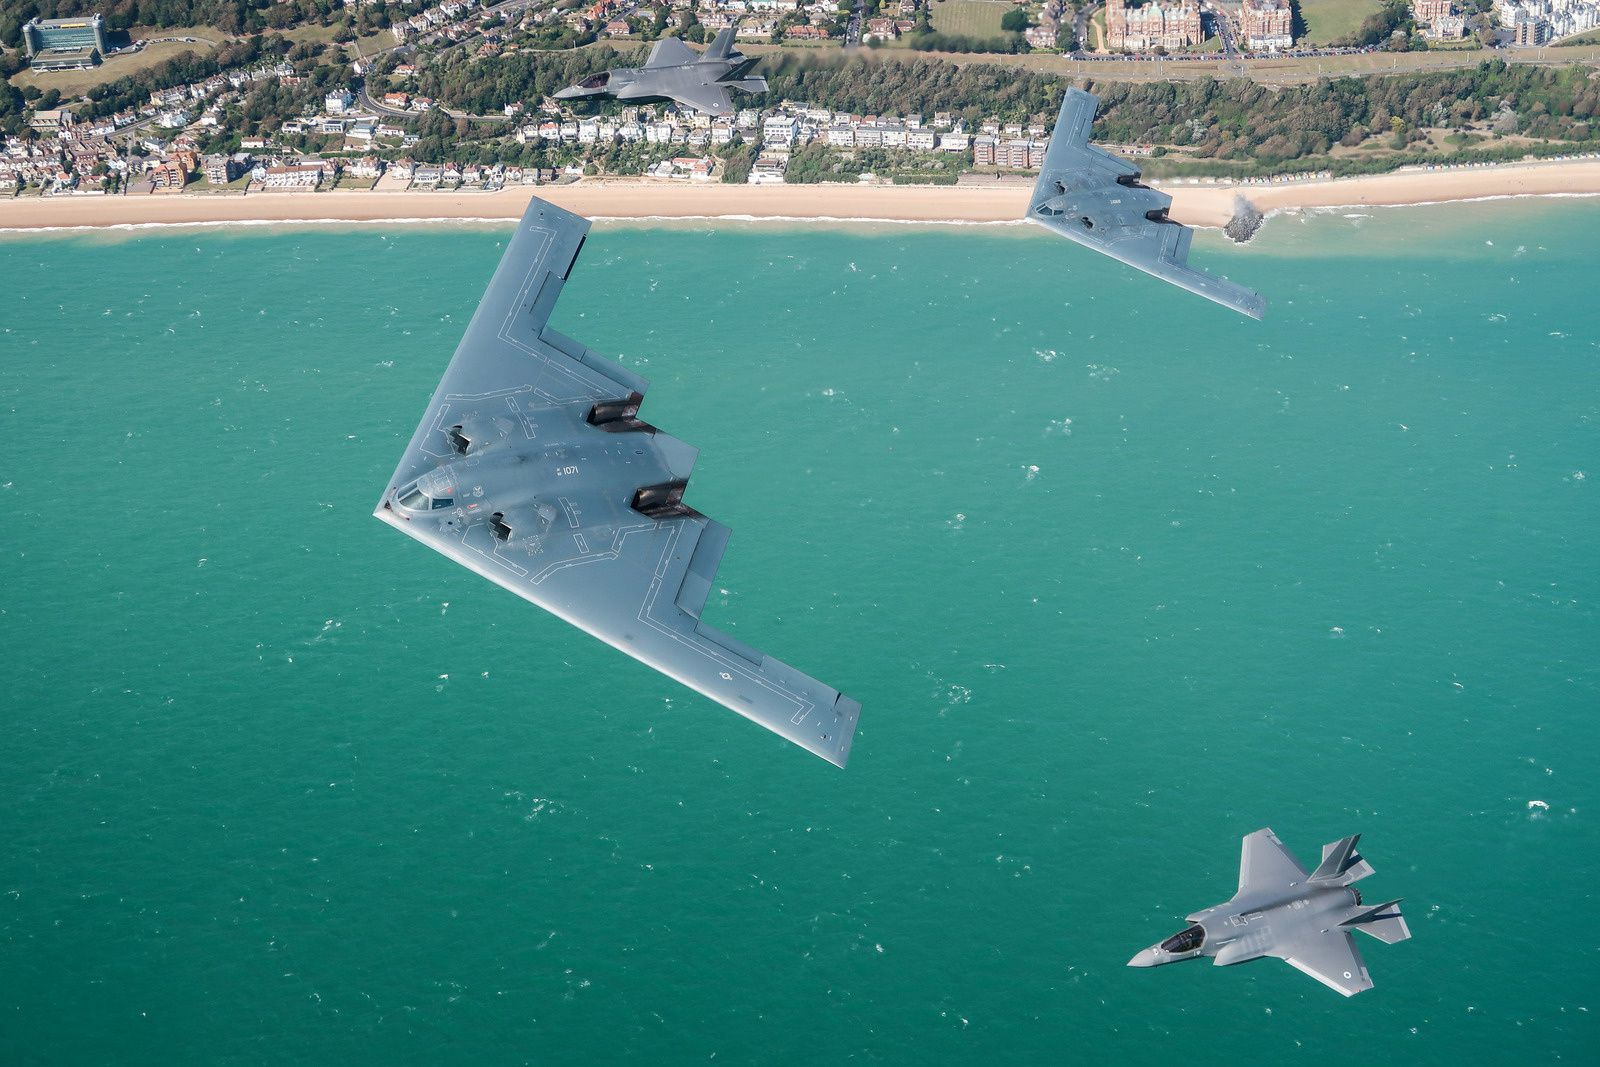 © Crown copyright - Deux F-35B Lightning II de la Royal Air Force en formation avec deux B-2A Spirit de l'US Air Force.